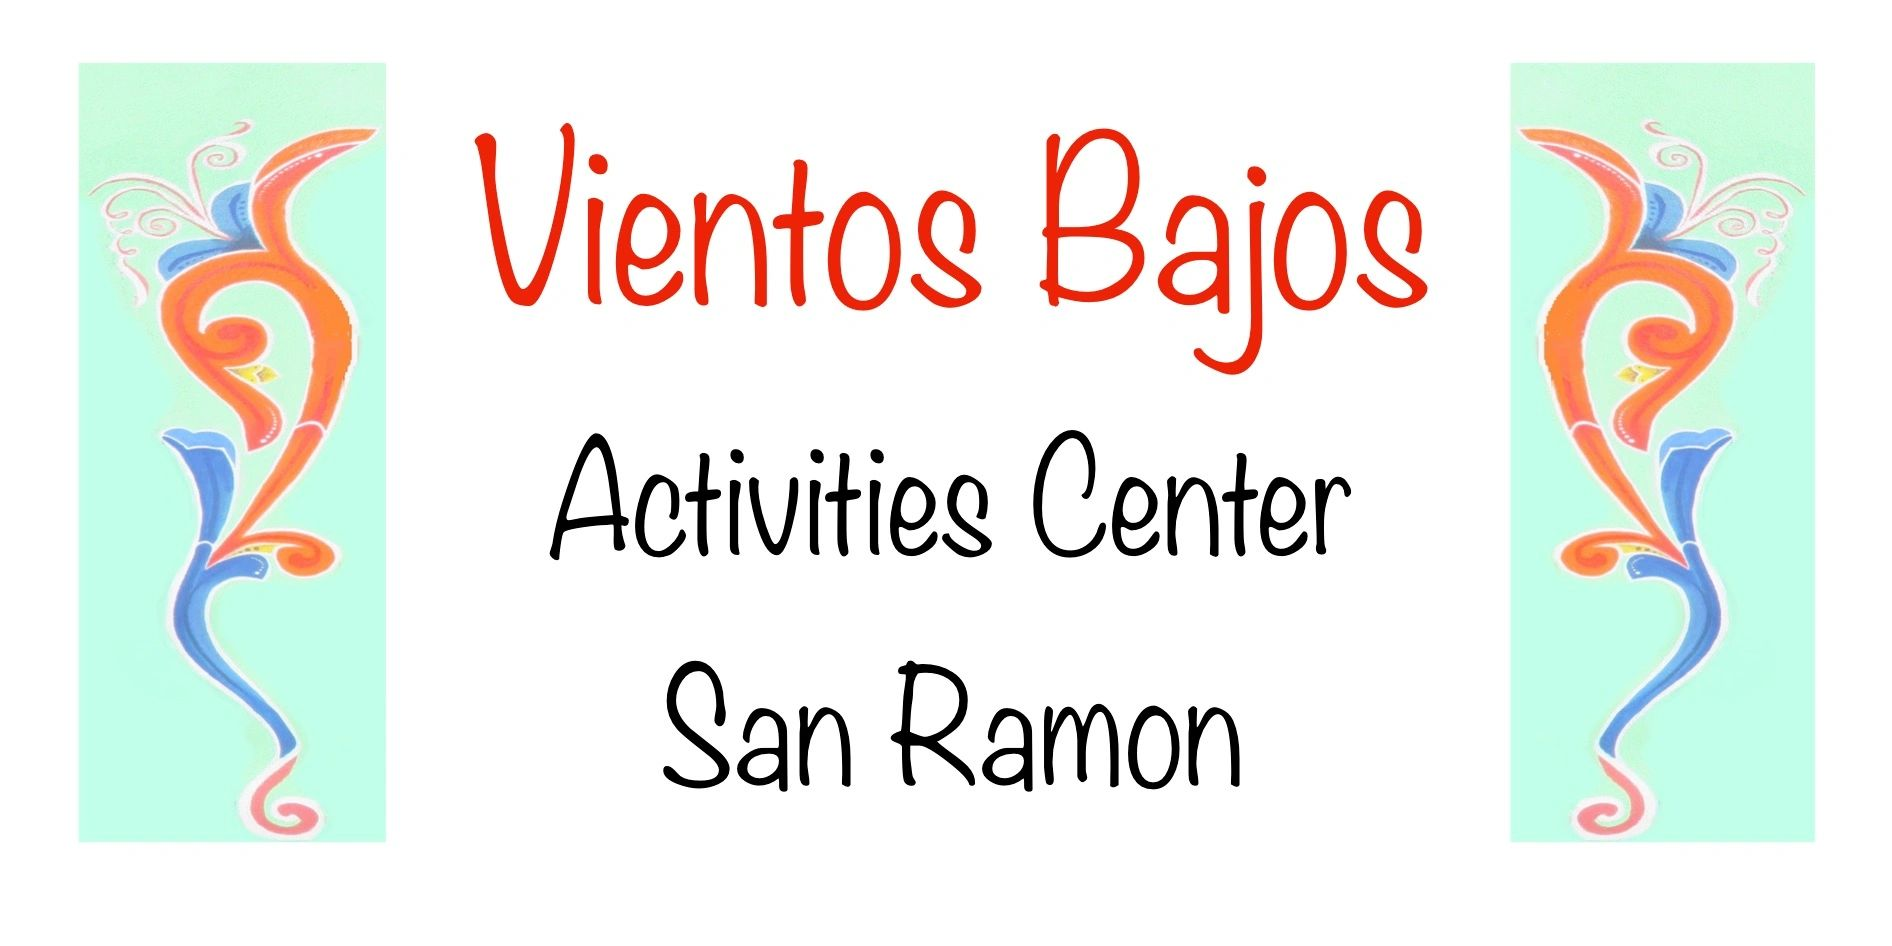 Logo for Vientos Bajos Activities Center, San Ramon, Costa Rica